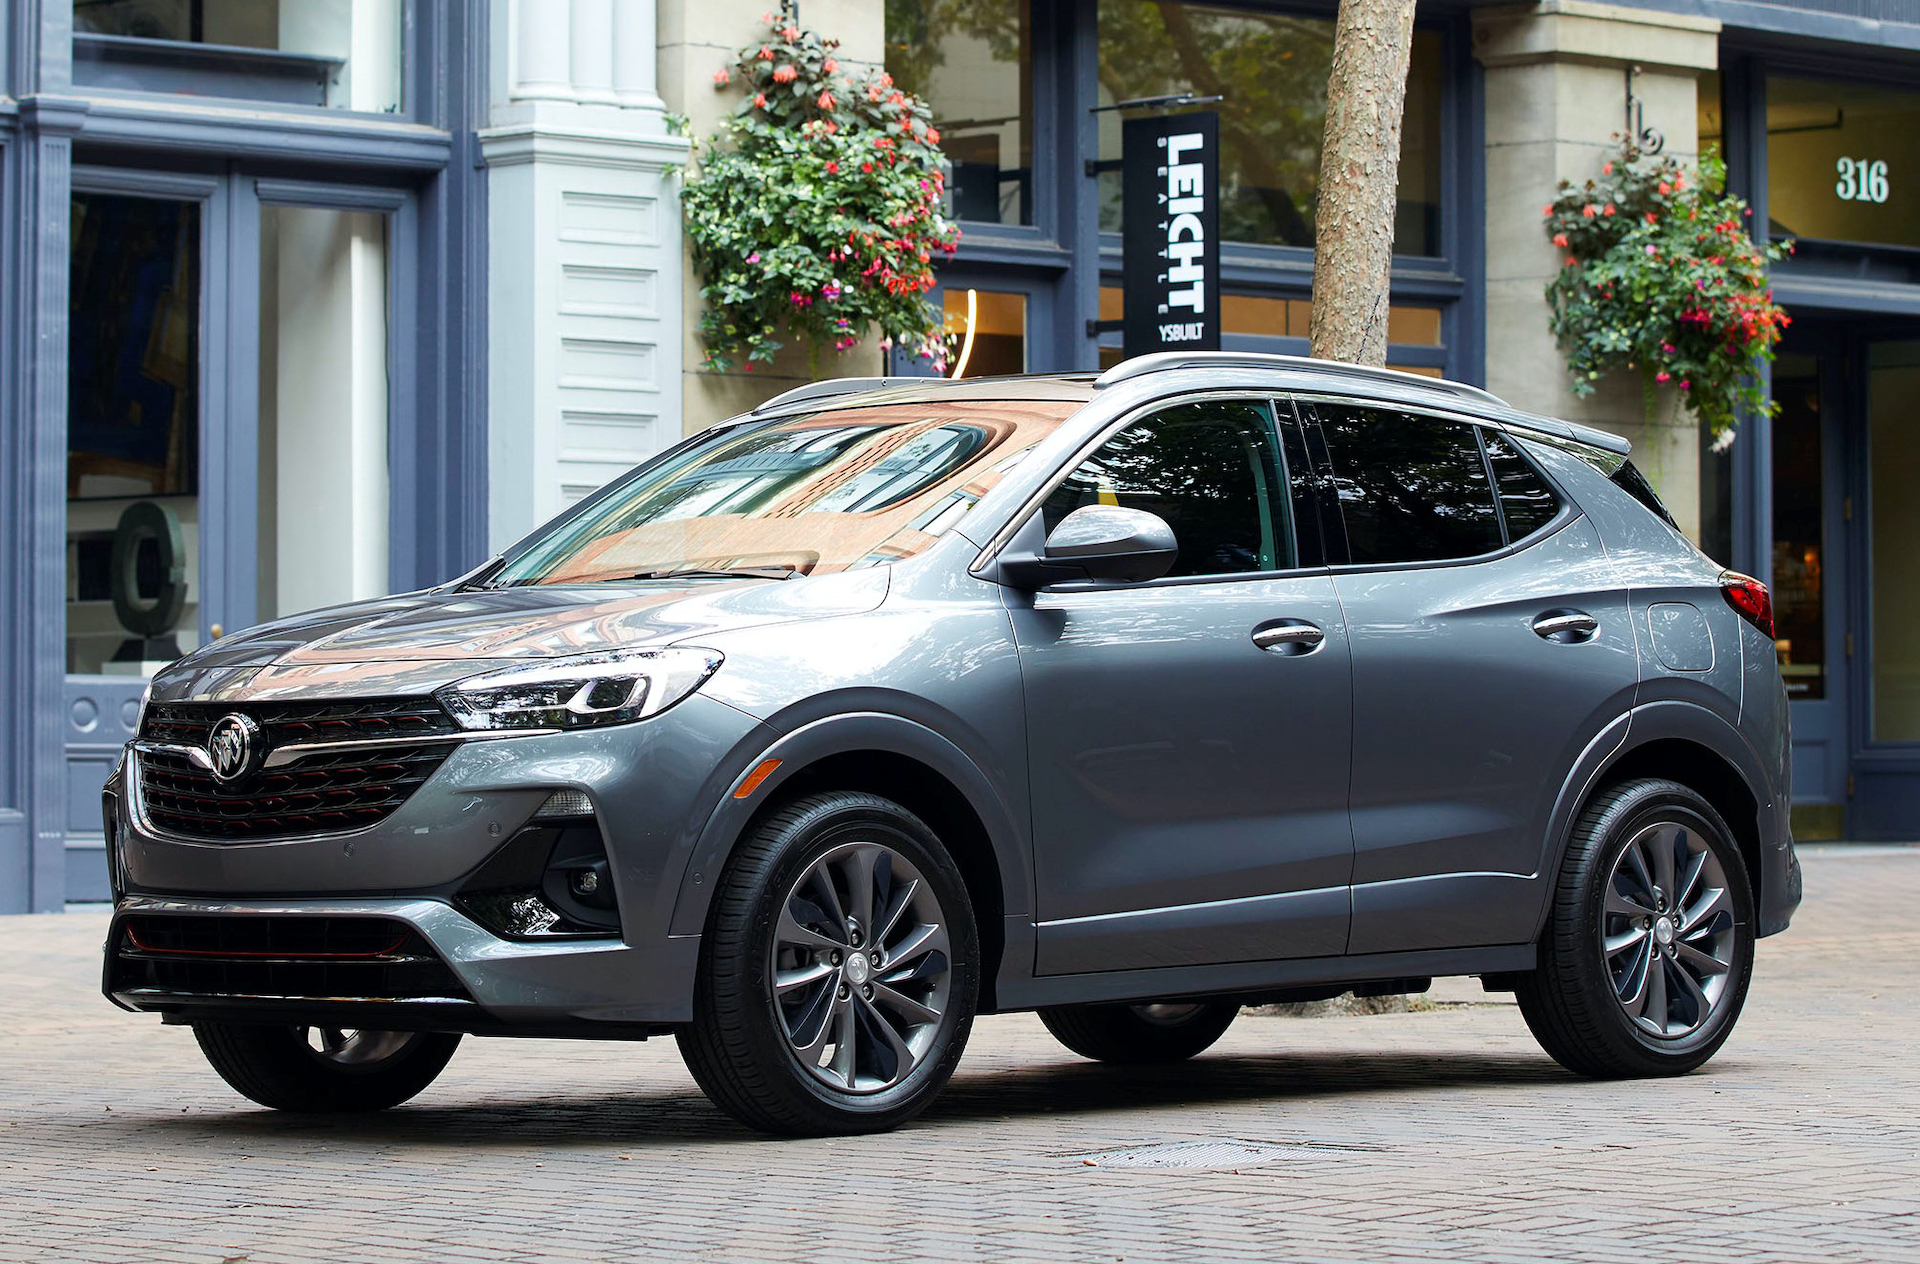 2021 Buick Encore Review, Ratings, Specs, Prices, And Photos New 2021 Buick Encore Gx Review, Dimensions, Price